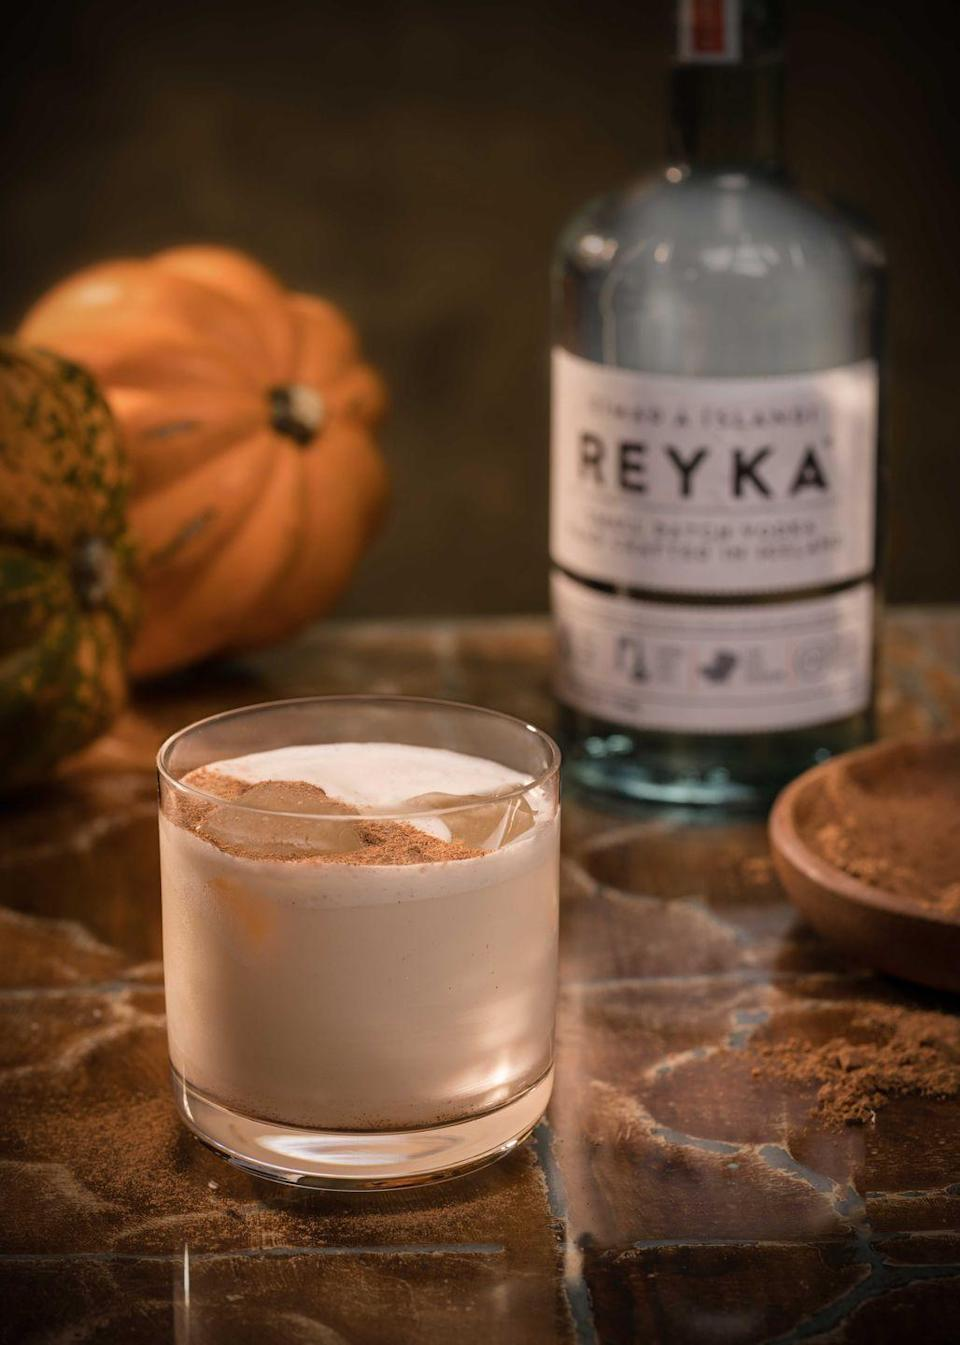 """<p><strong>Ingredients</strong></p><p>2 oz Reyka Vodka<br>1 oz coffee liqueur<br>1 oz heavy cream<br>.5 tsp pumpkin pie spice</p><p><strong>Instructions</strong></p><p>Combine all ingredients in shaker over ice. Shake and serve in a rocks glass.</p><p><strong>More</strong>: <a href=""""https://www.townandcountrymag.com/leisure/drinks/g1547/fall-cocktails/"""" rel=""""nofollow noopener"""" target=""""_blank"""" data-ylk=""""slk:Fall Cocktails to Enjoy This Season"""" class=""""link rapid-noclick-resp"""">Fall Cocktails to Enjoy This Season</a></p>"""